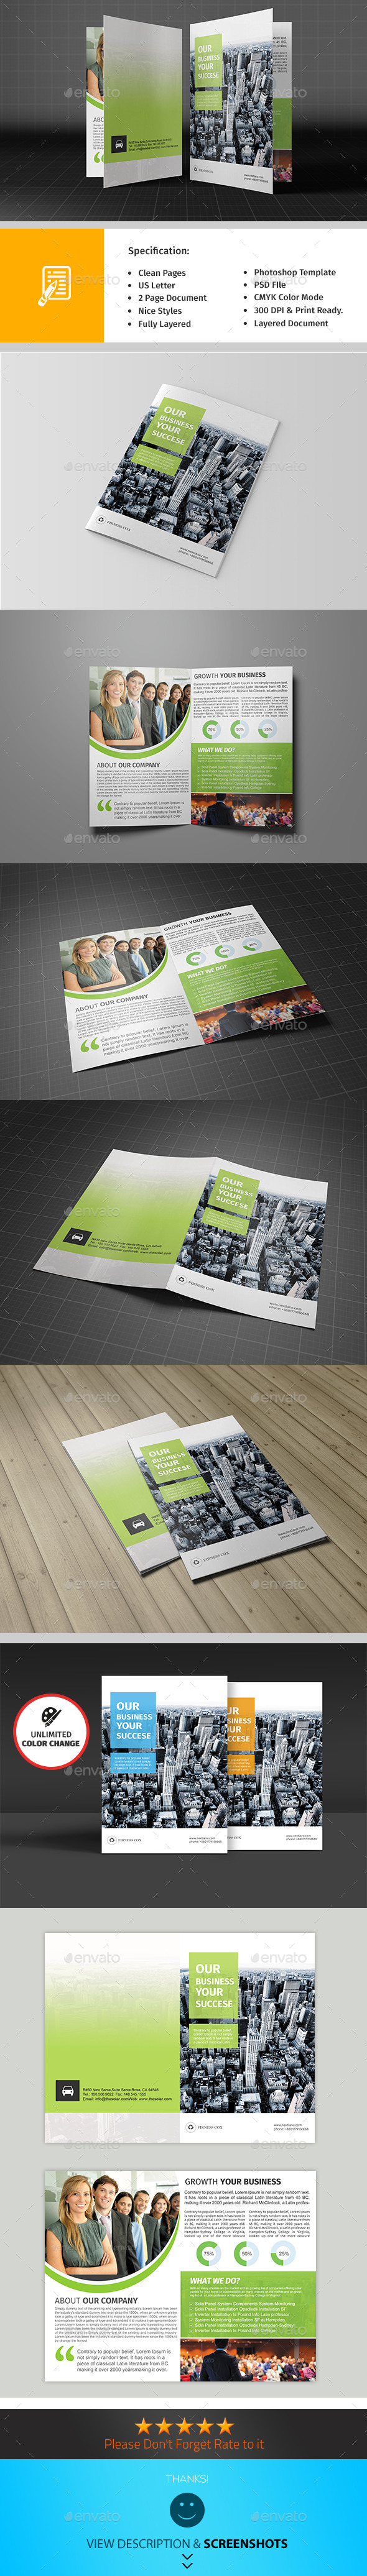 Bifold Corporate Brochure Template Vol01 - Corporate Brochures